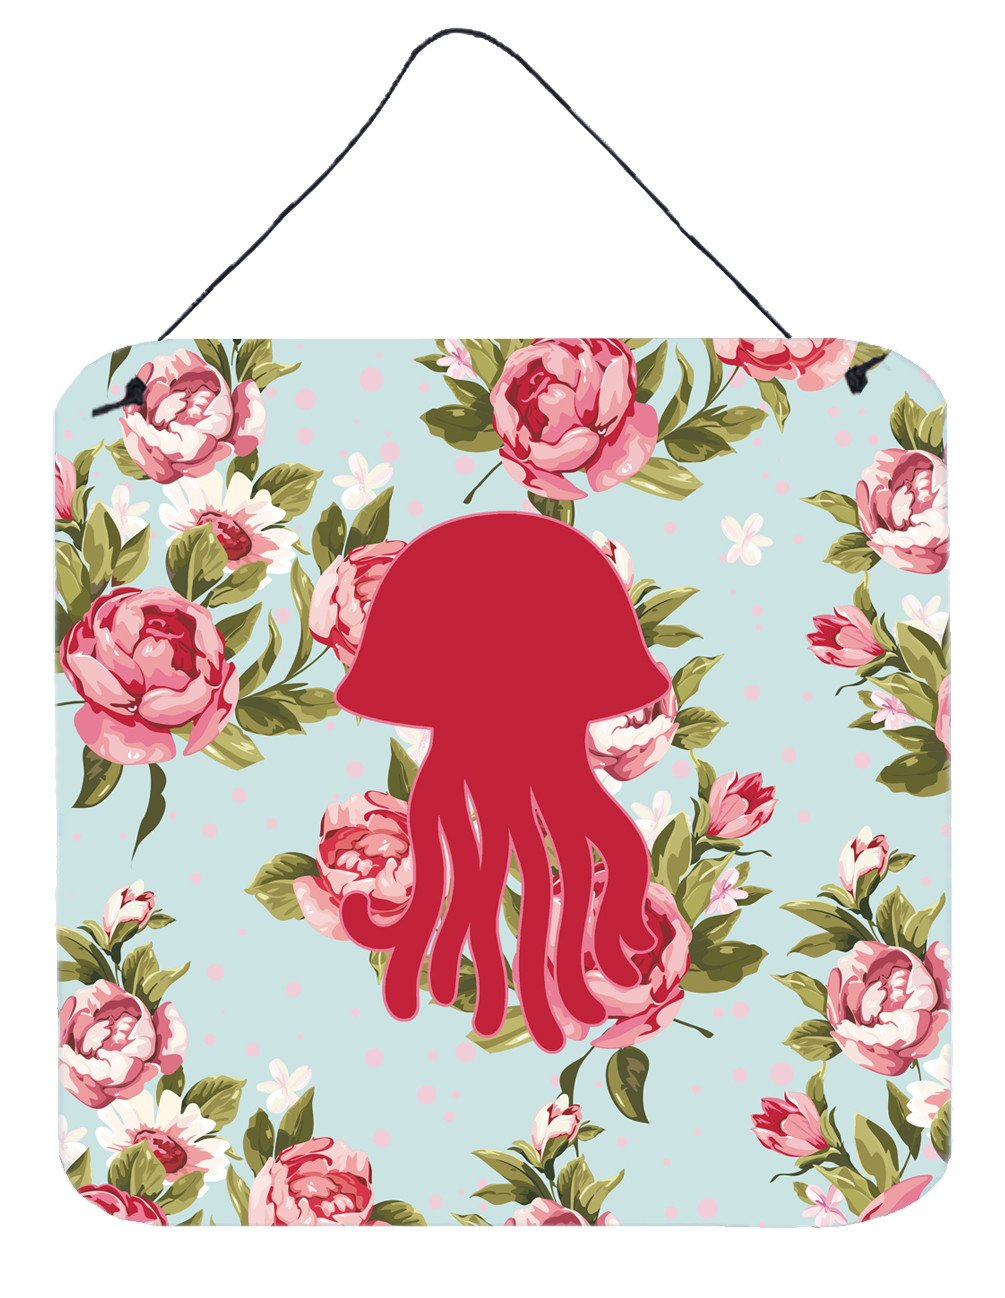 Jellyfish Shabby Chic Blue Roses Wall or Door Hanging Prints BB1091 by Caroline's Treasures